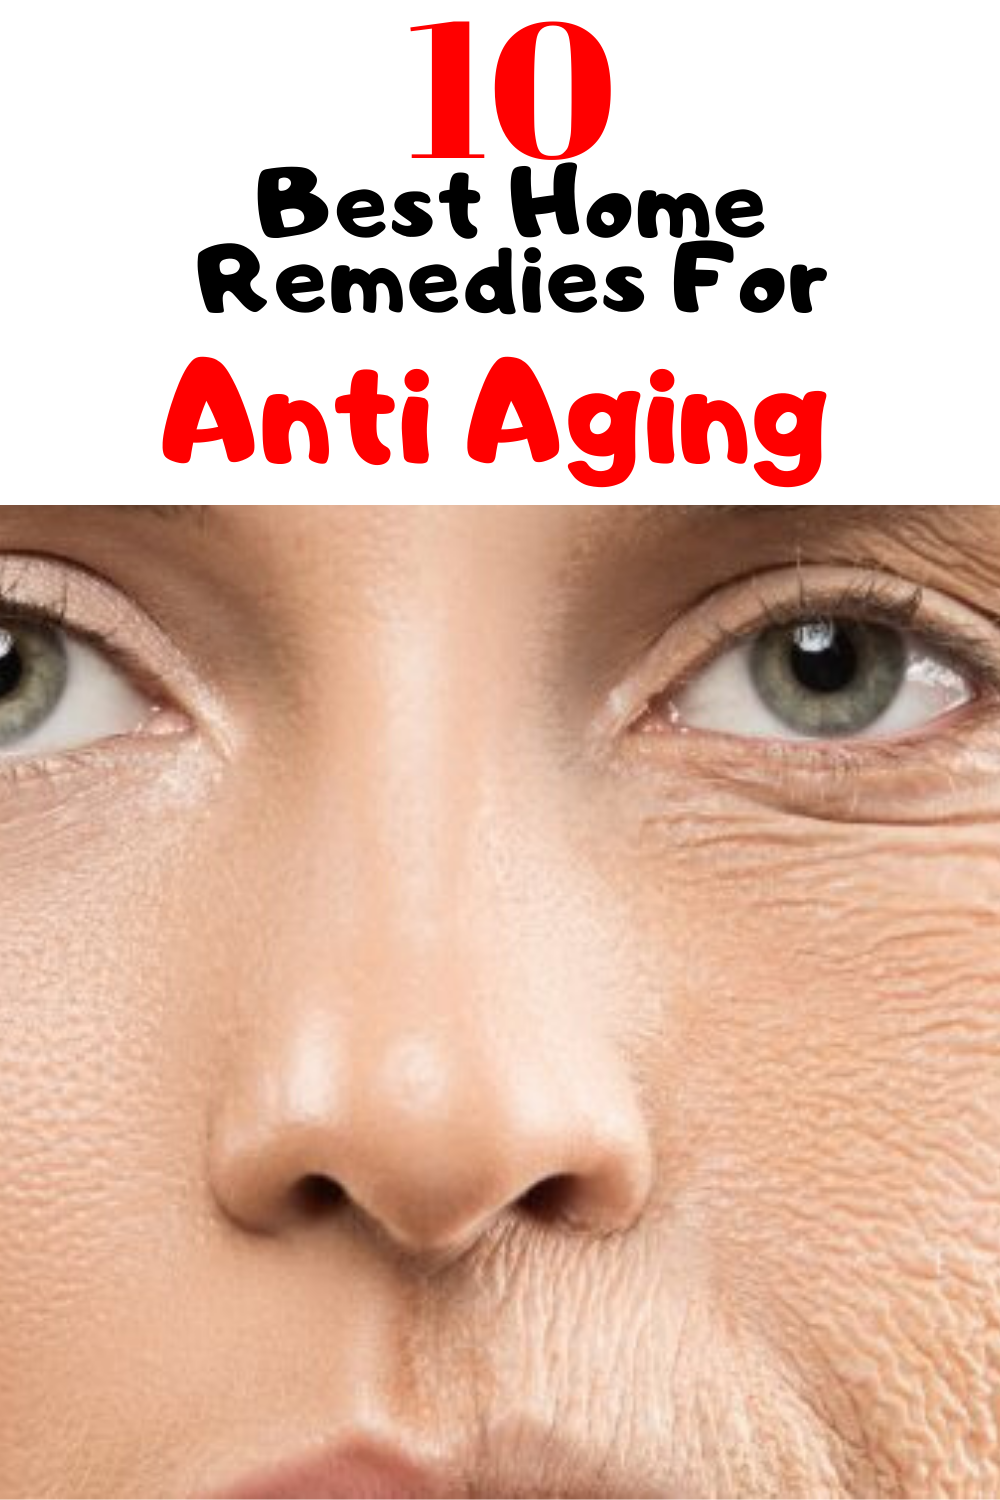 10 Best Home Remedies For Anti Aging In 2020 Home Remedies For Skin Home Remedies Anti Aging